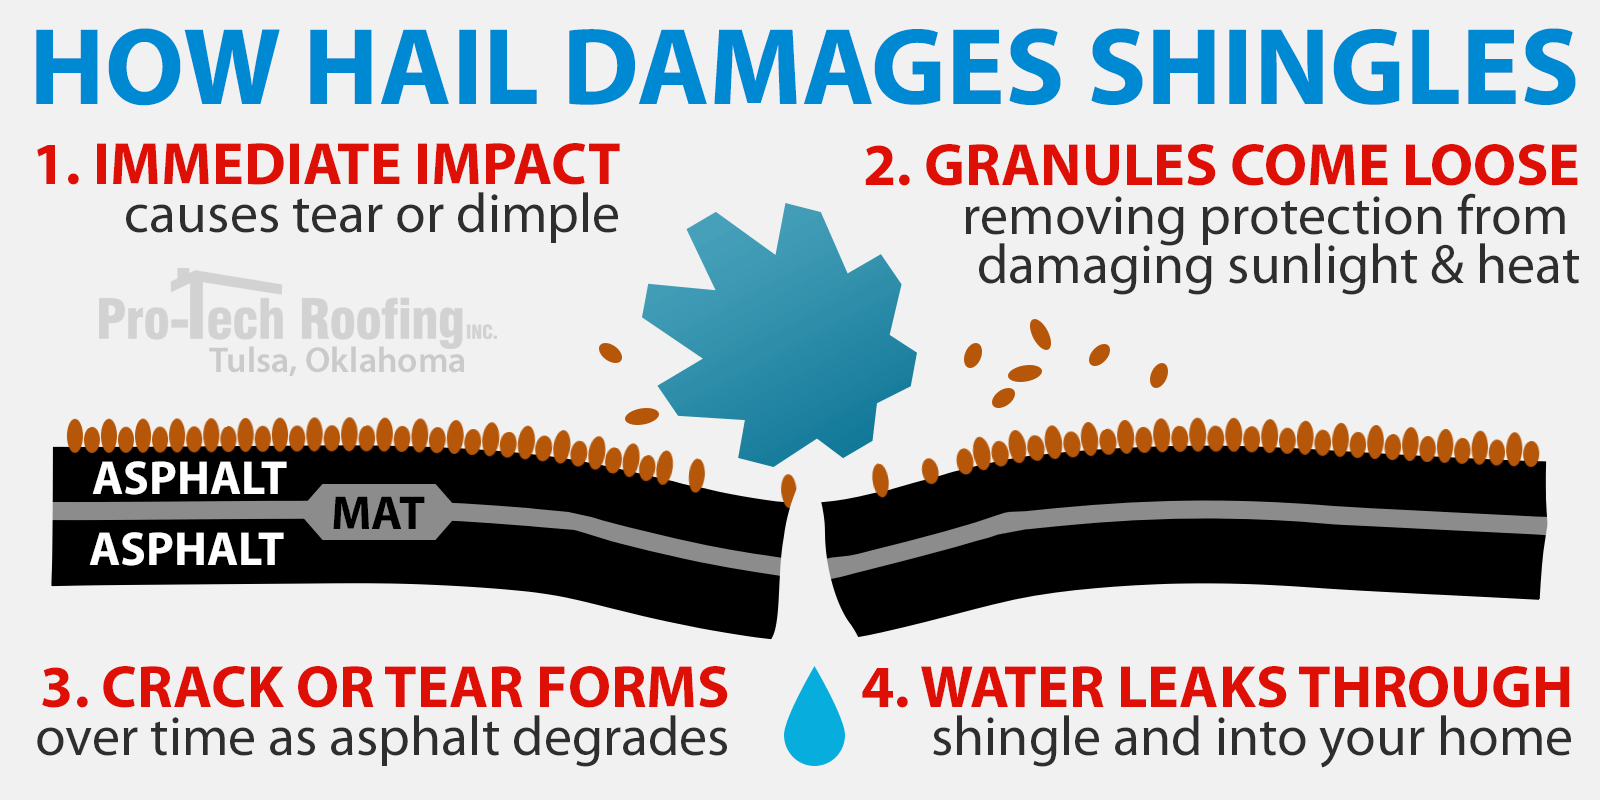 How hail damages shingles